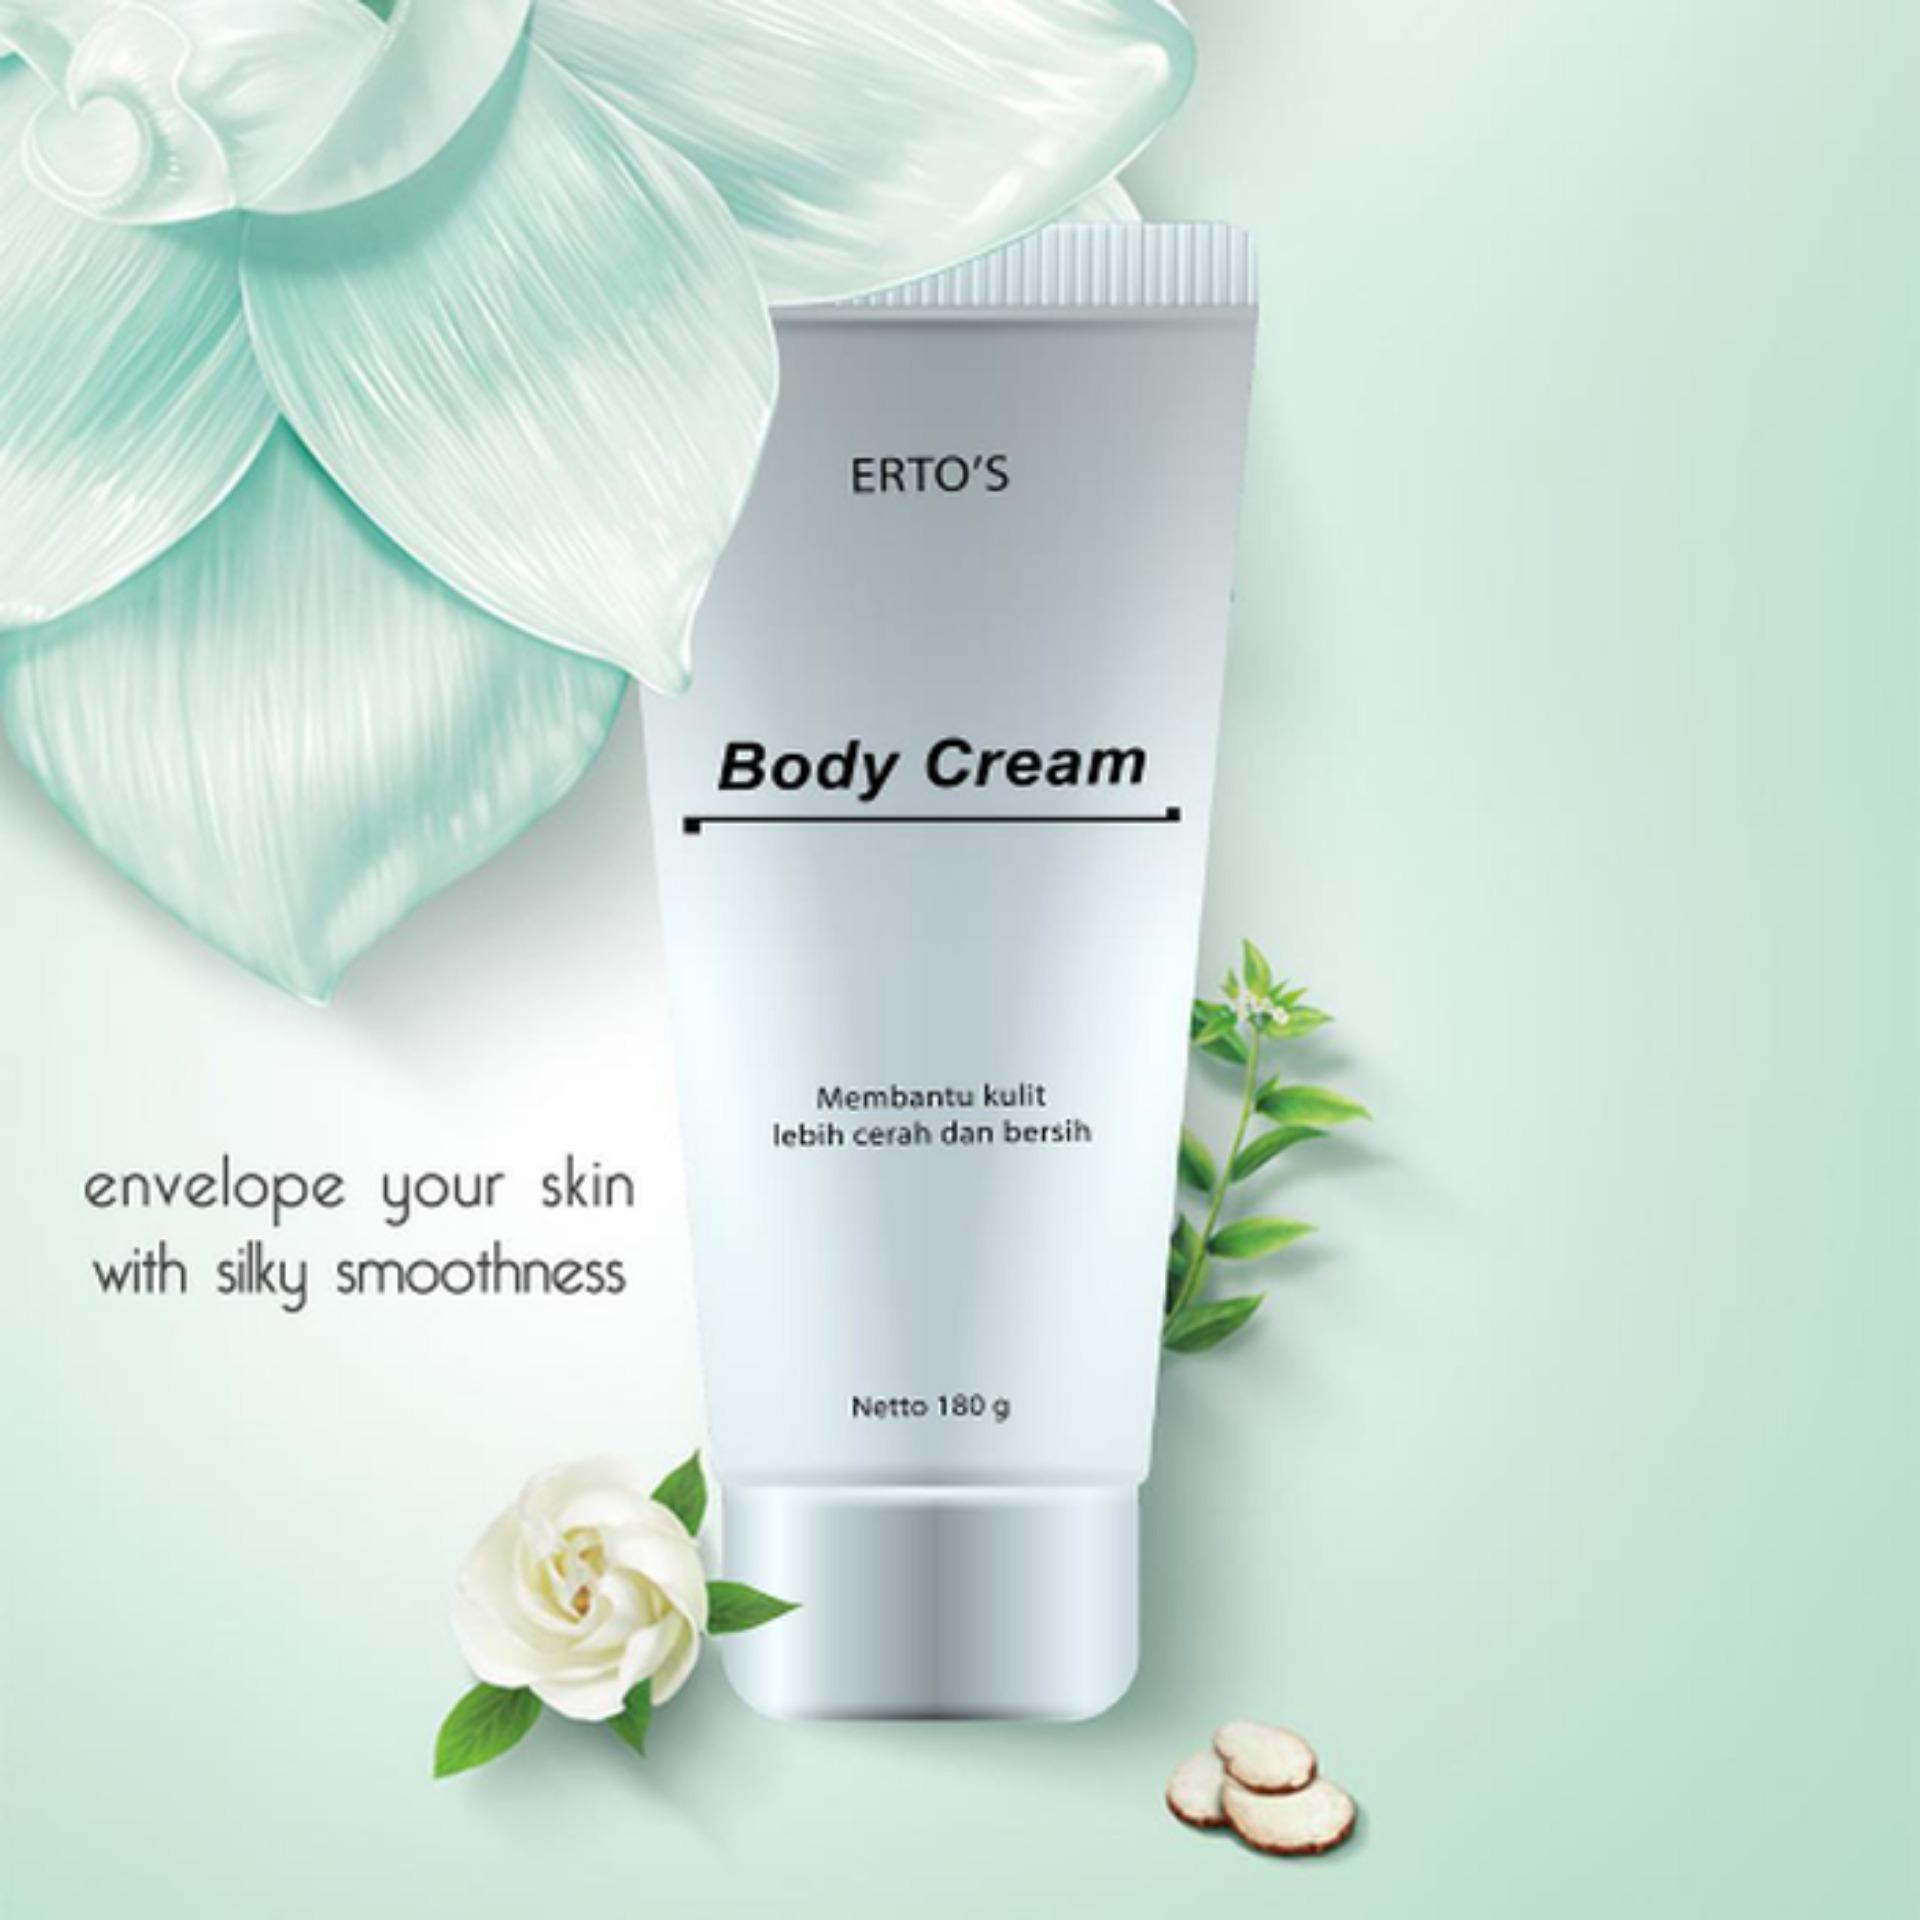 Kehebatan Paket Hemat Ertos Original Facial Treatment Body Lengkap Cream 4